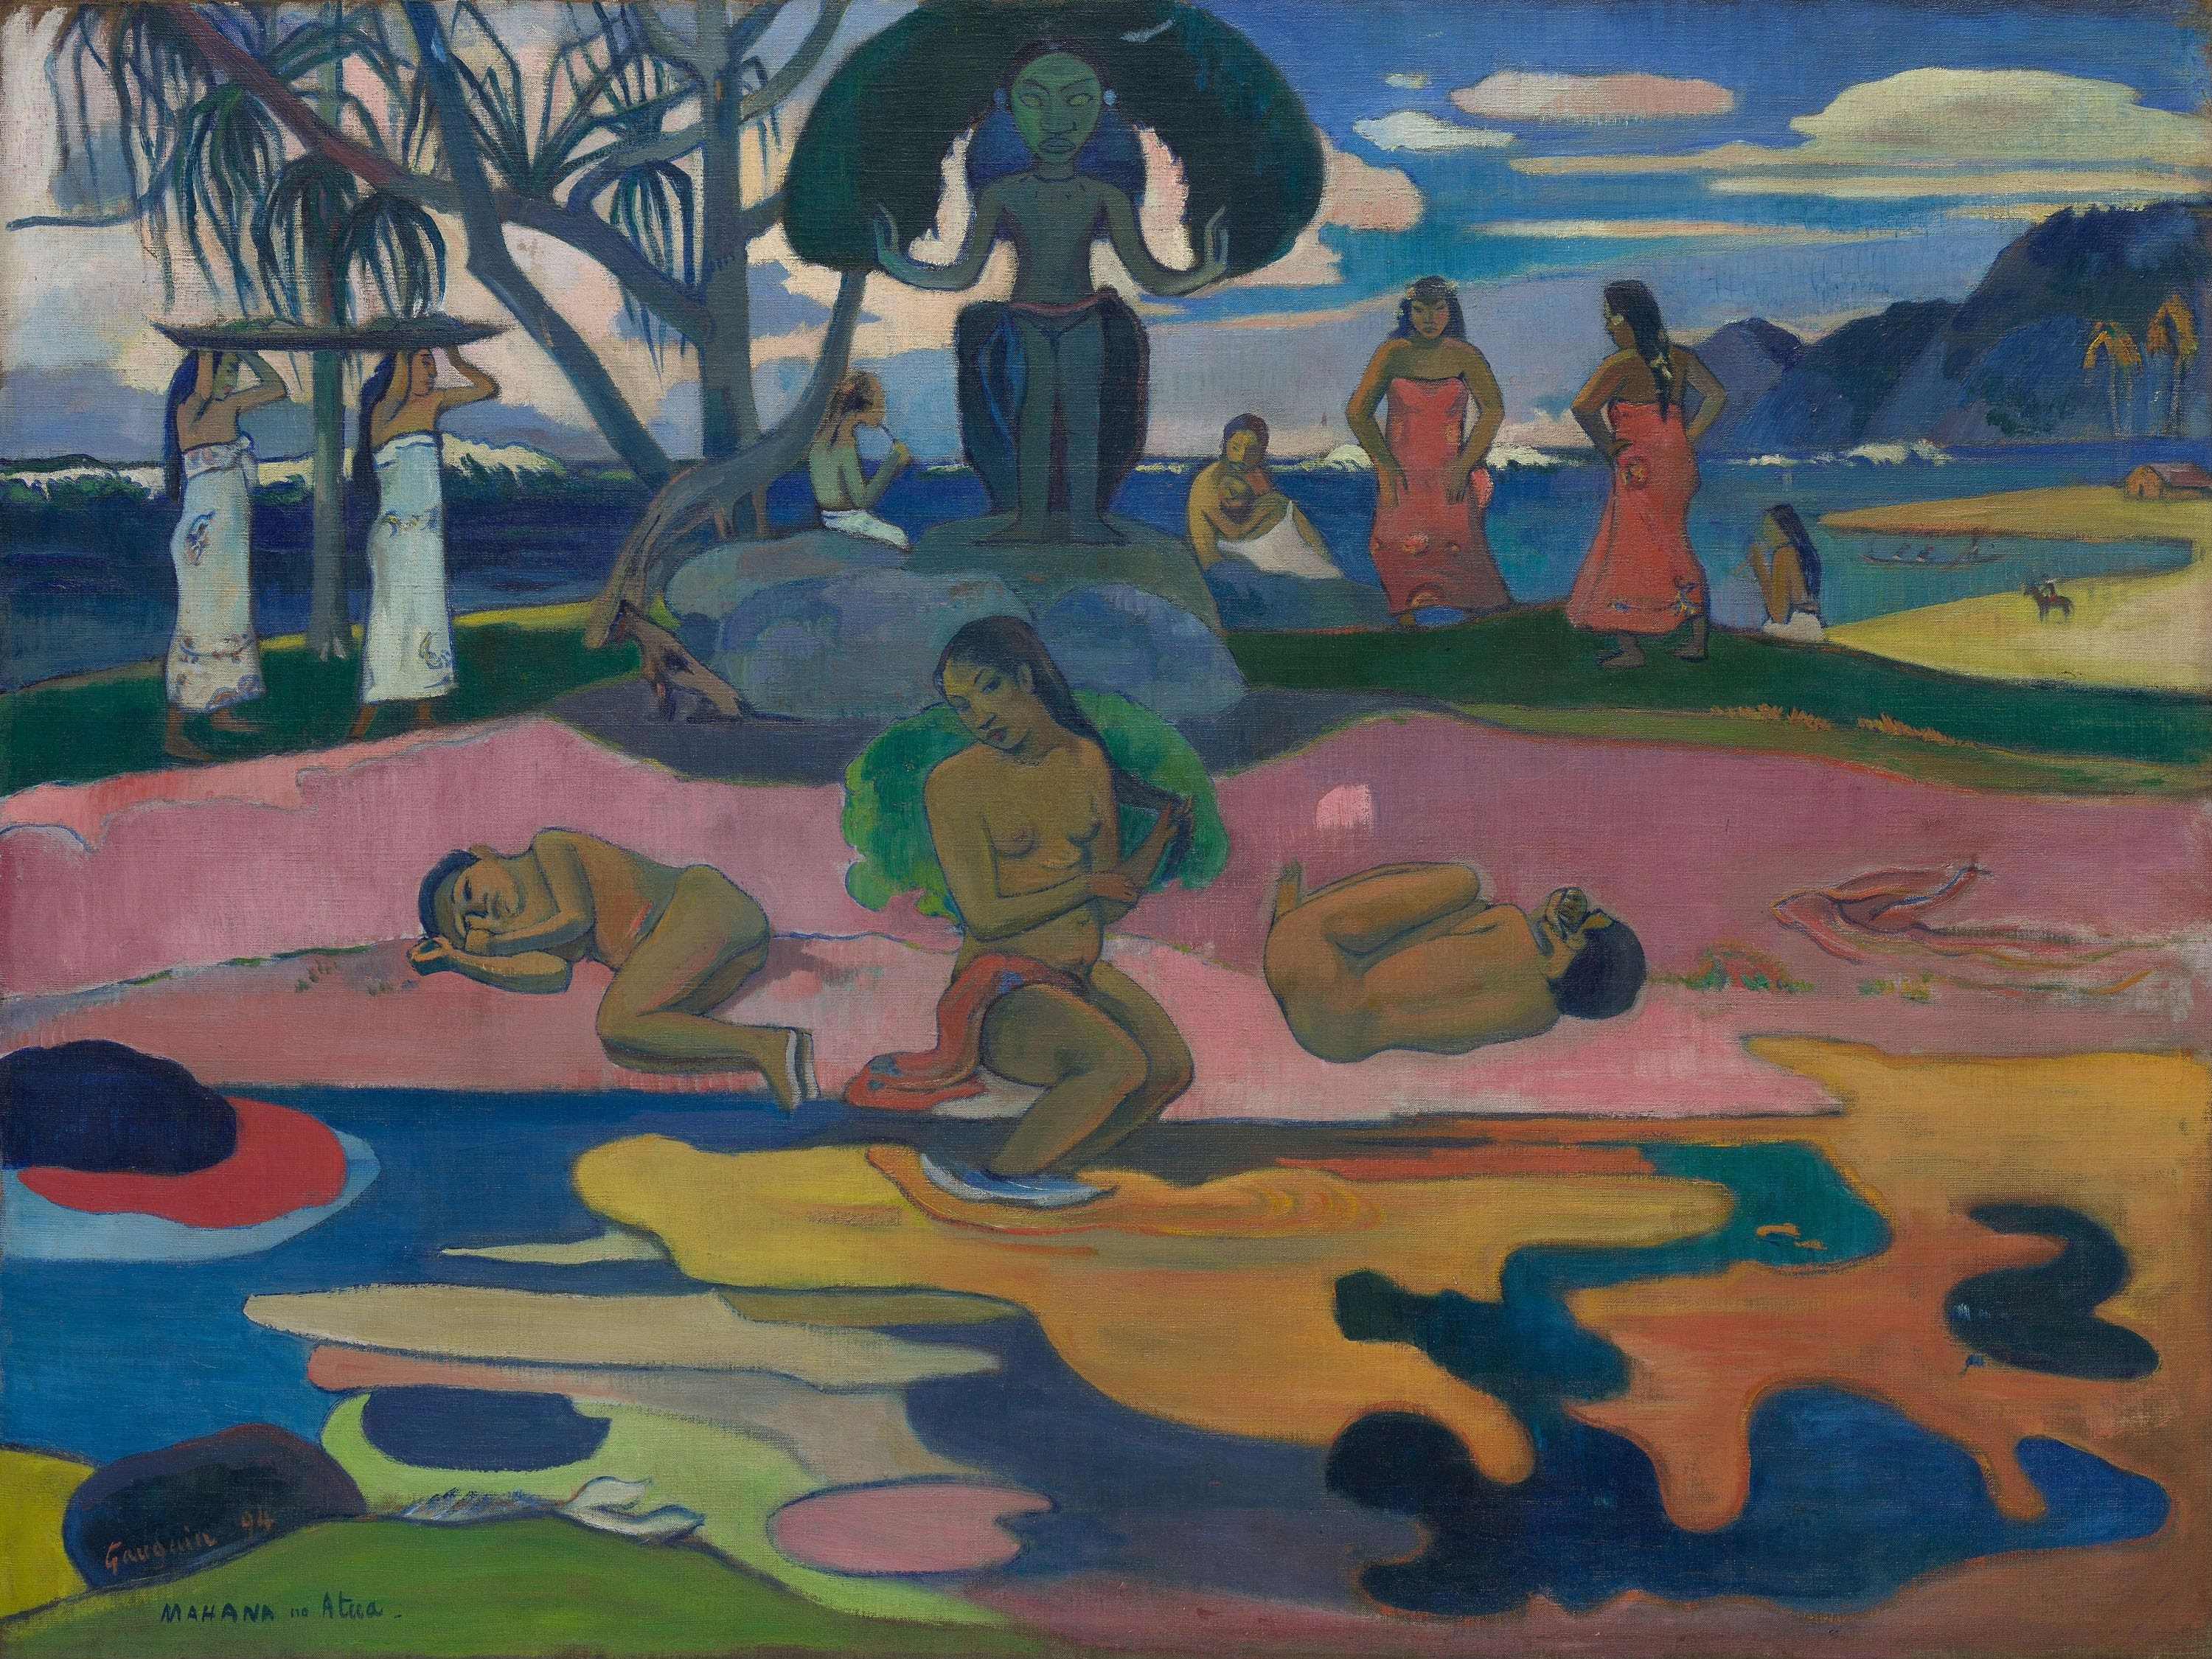 http://upload.wikimedia.org/wikipedia/commons/4/44/Paul_Gauguin_113.jpg